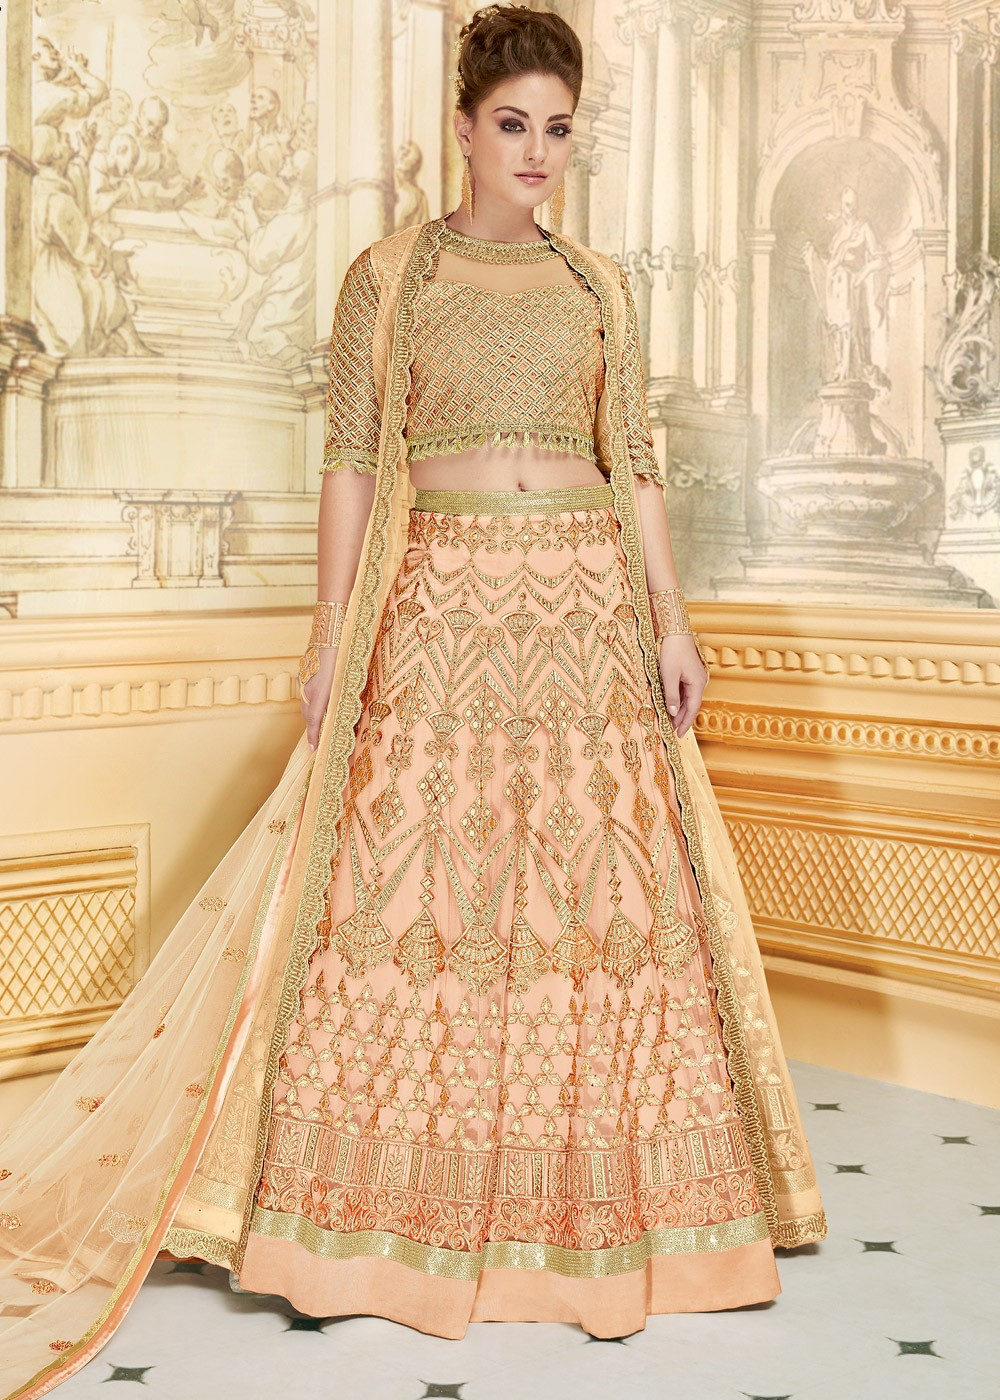 Peach Net Embroidered Lehenga Choli With Jacket Most Loved Styles